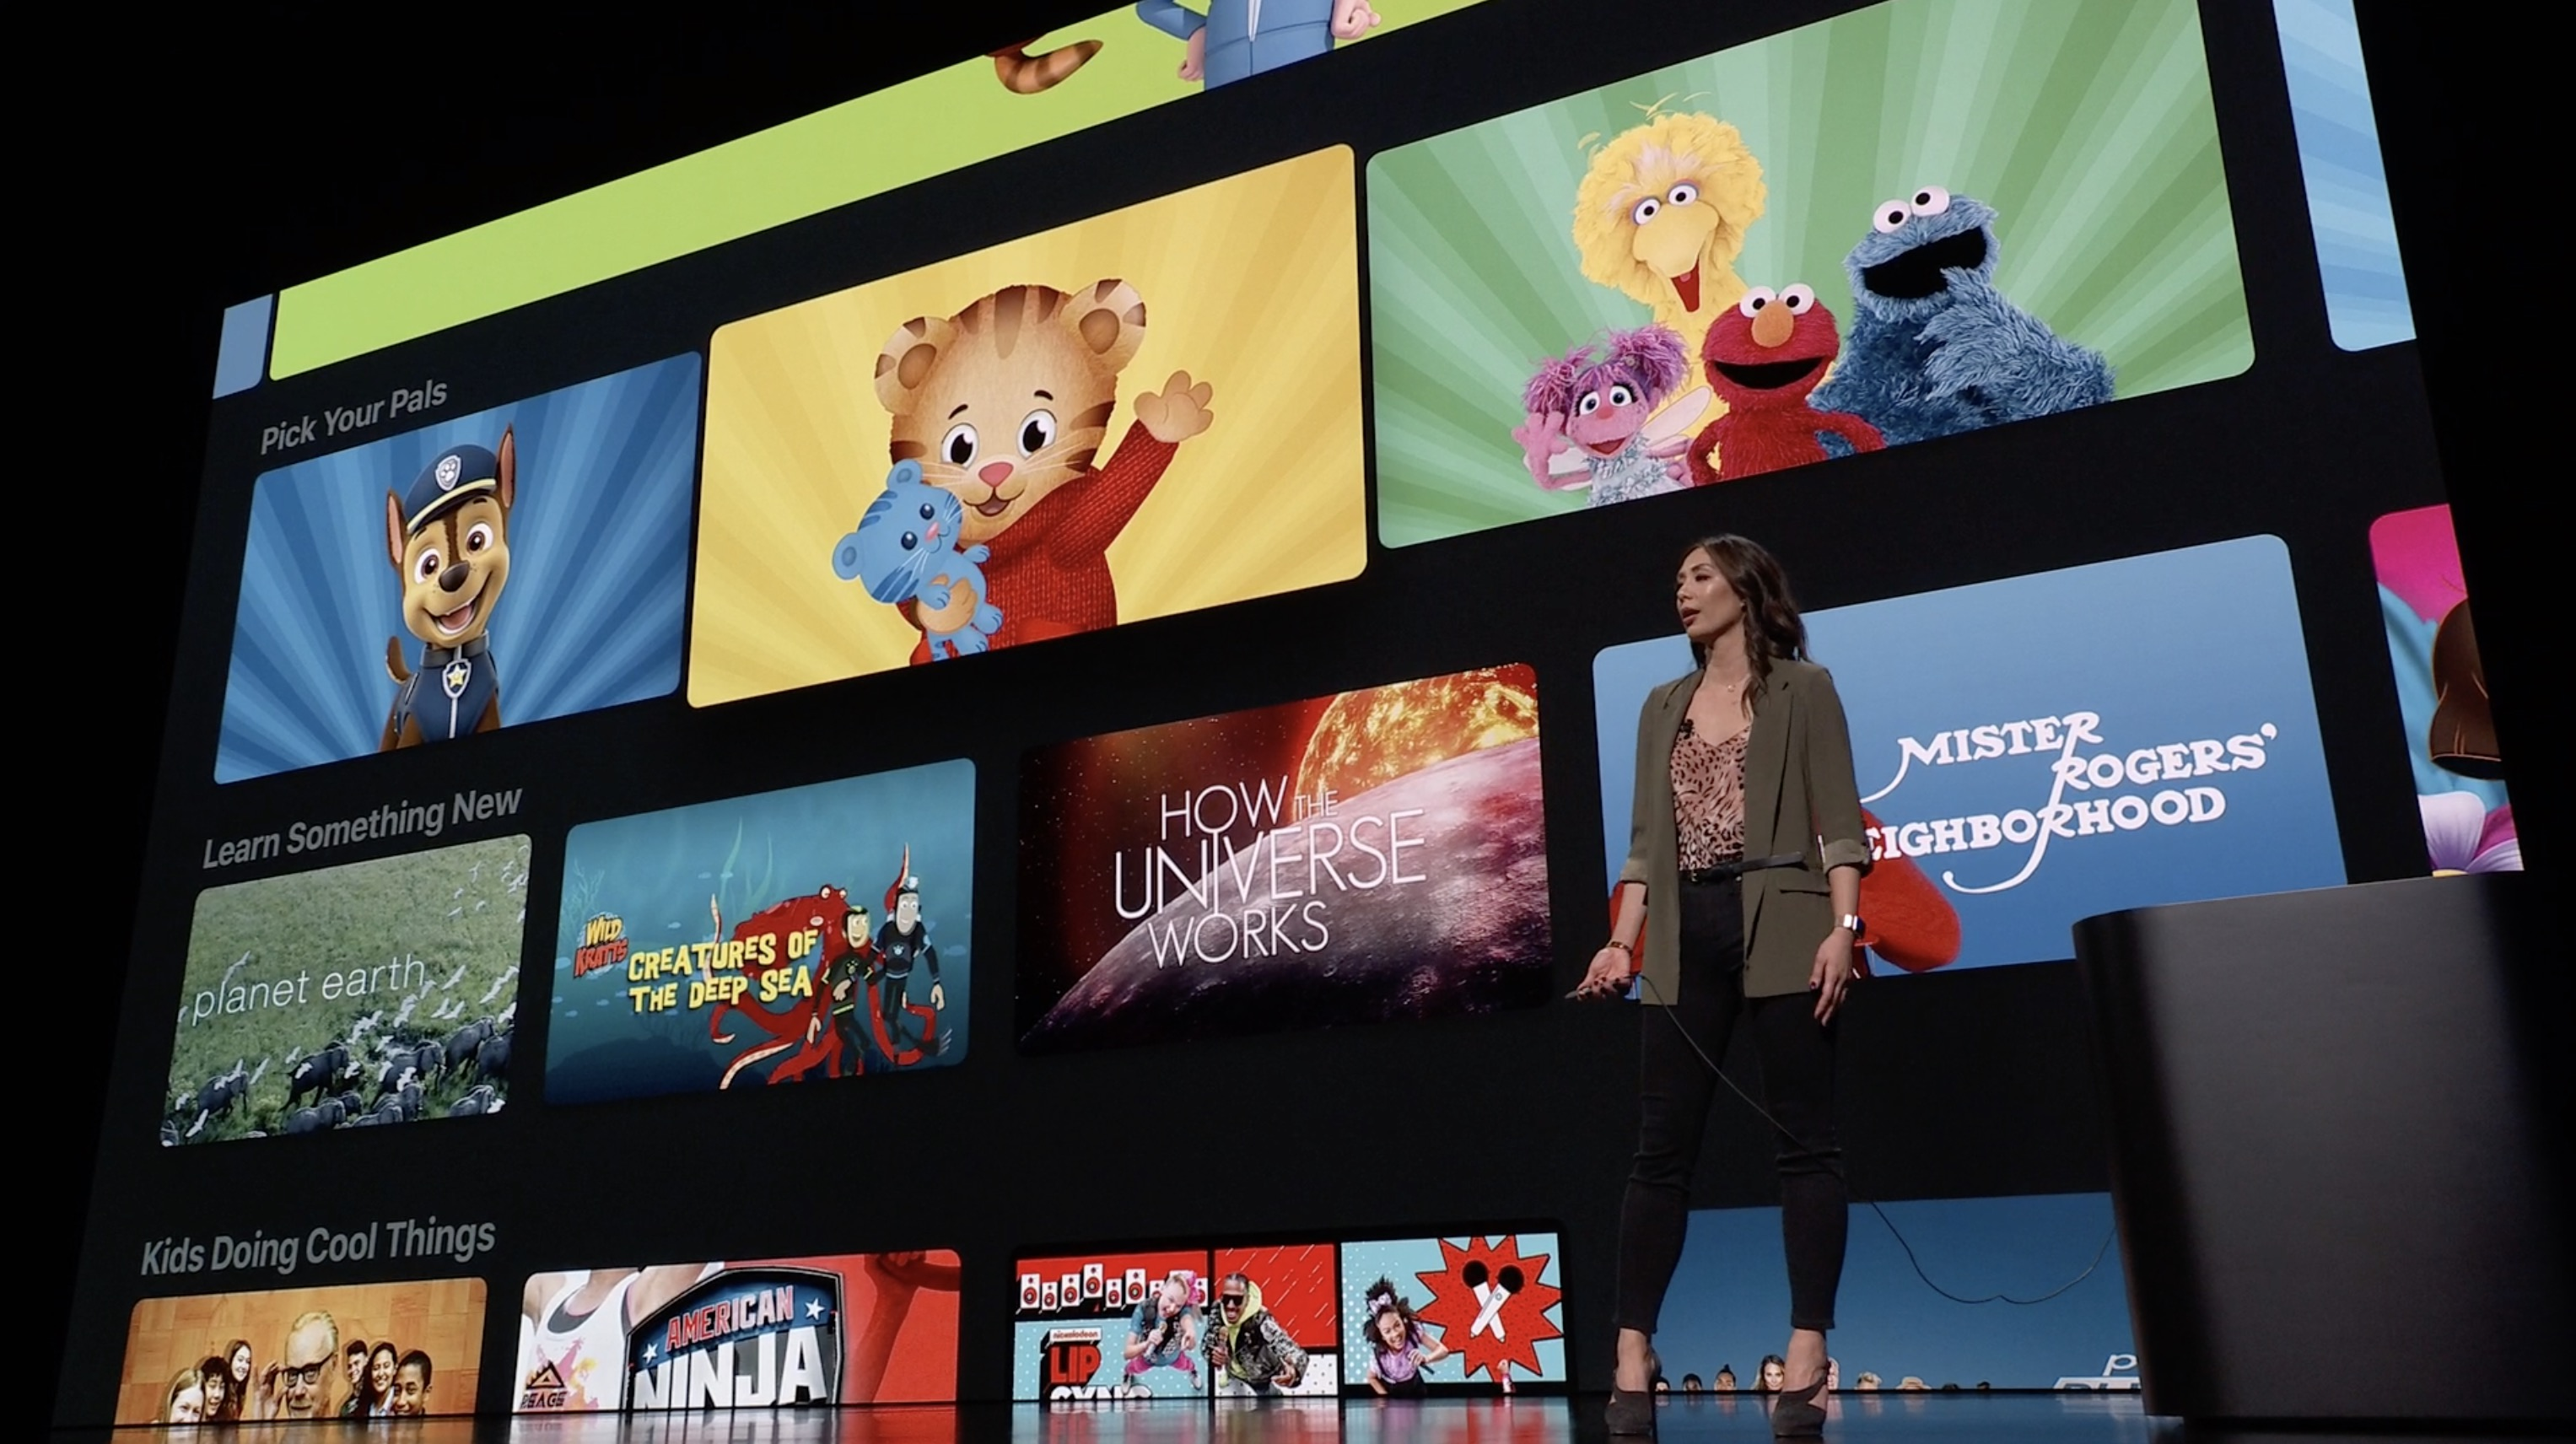 This is Apple TV +. A service that will compete with Netflix and HBO Go